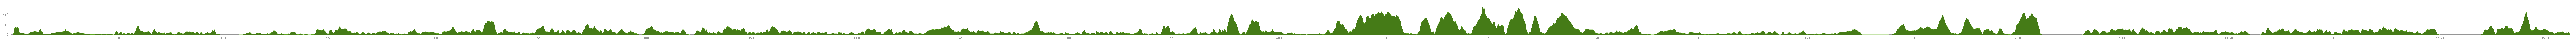 Elevation profile Cycle Route Coastroute Halden - Bergen